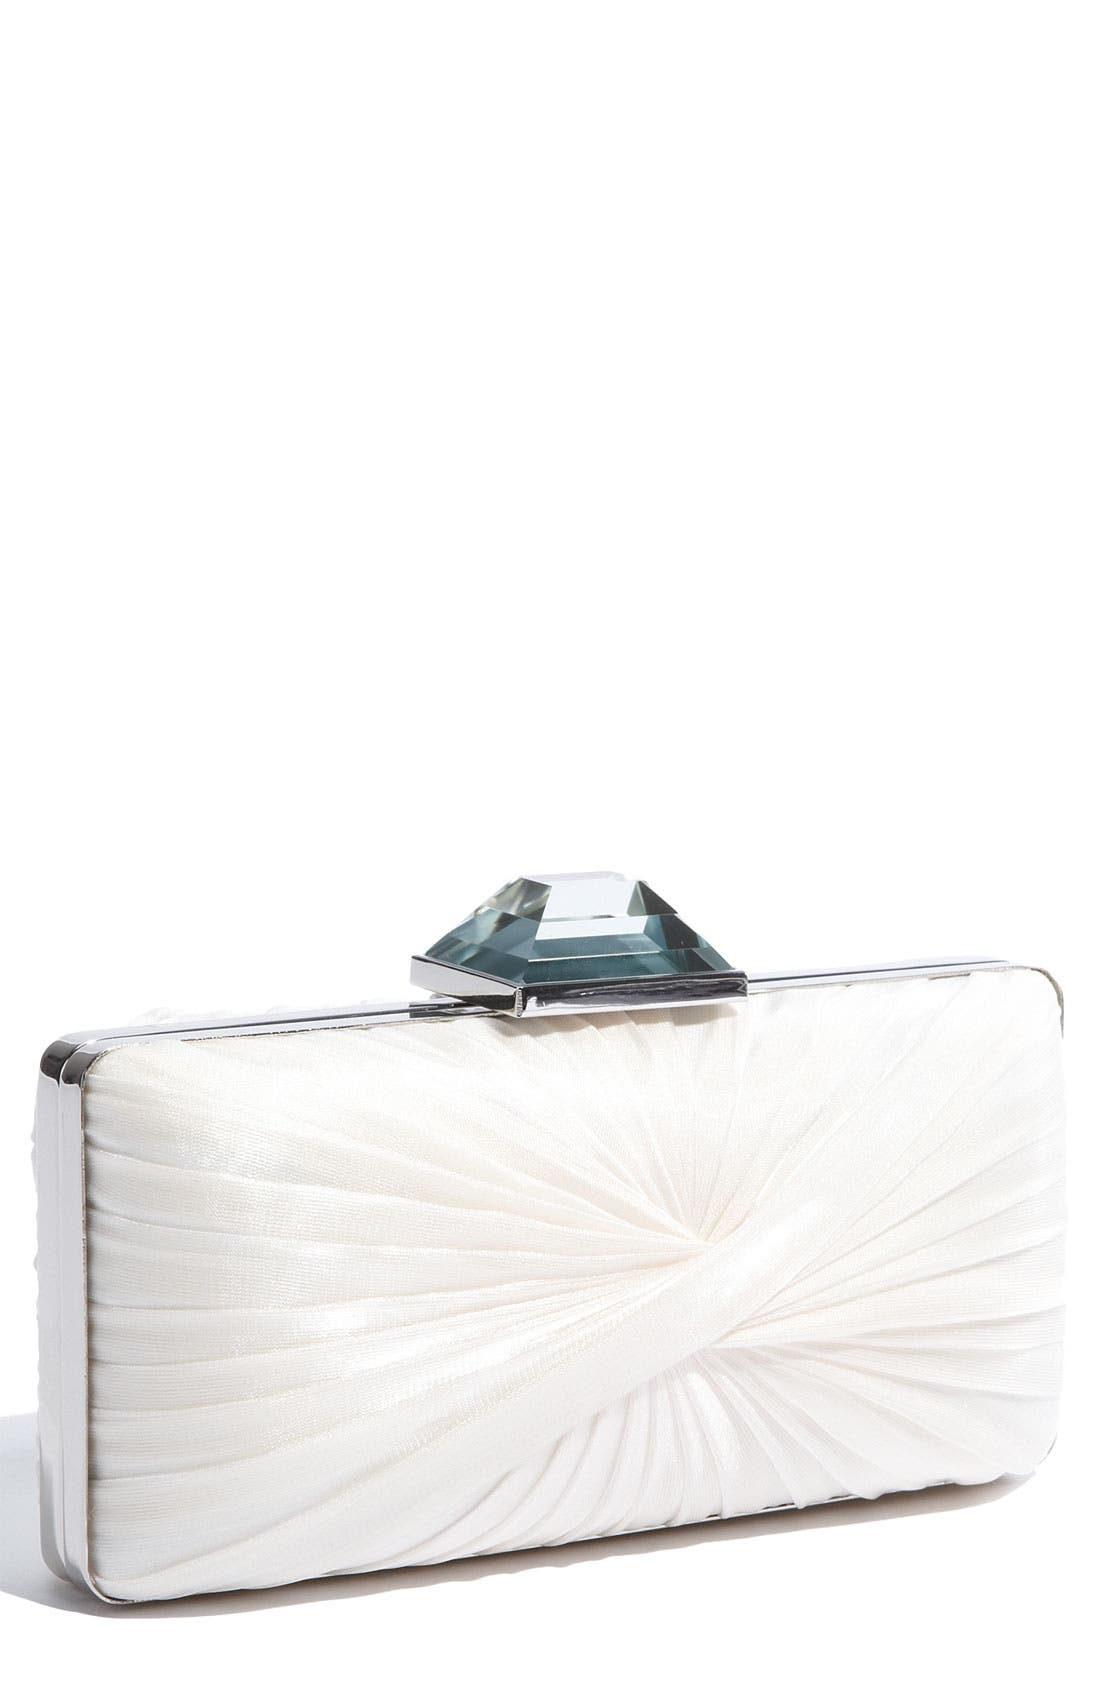 Alternate Image 1 Selected - Sondra Roberts 'Twist Pleat' Satin Clutch